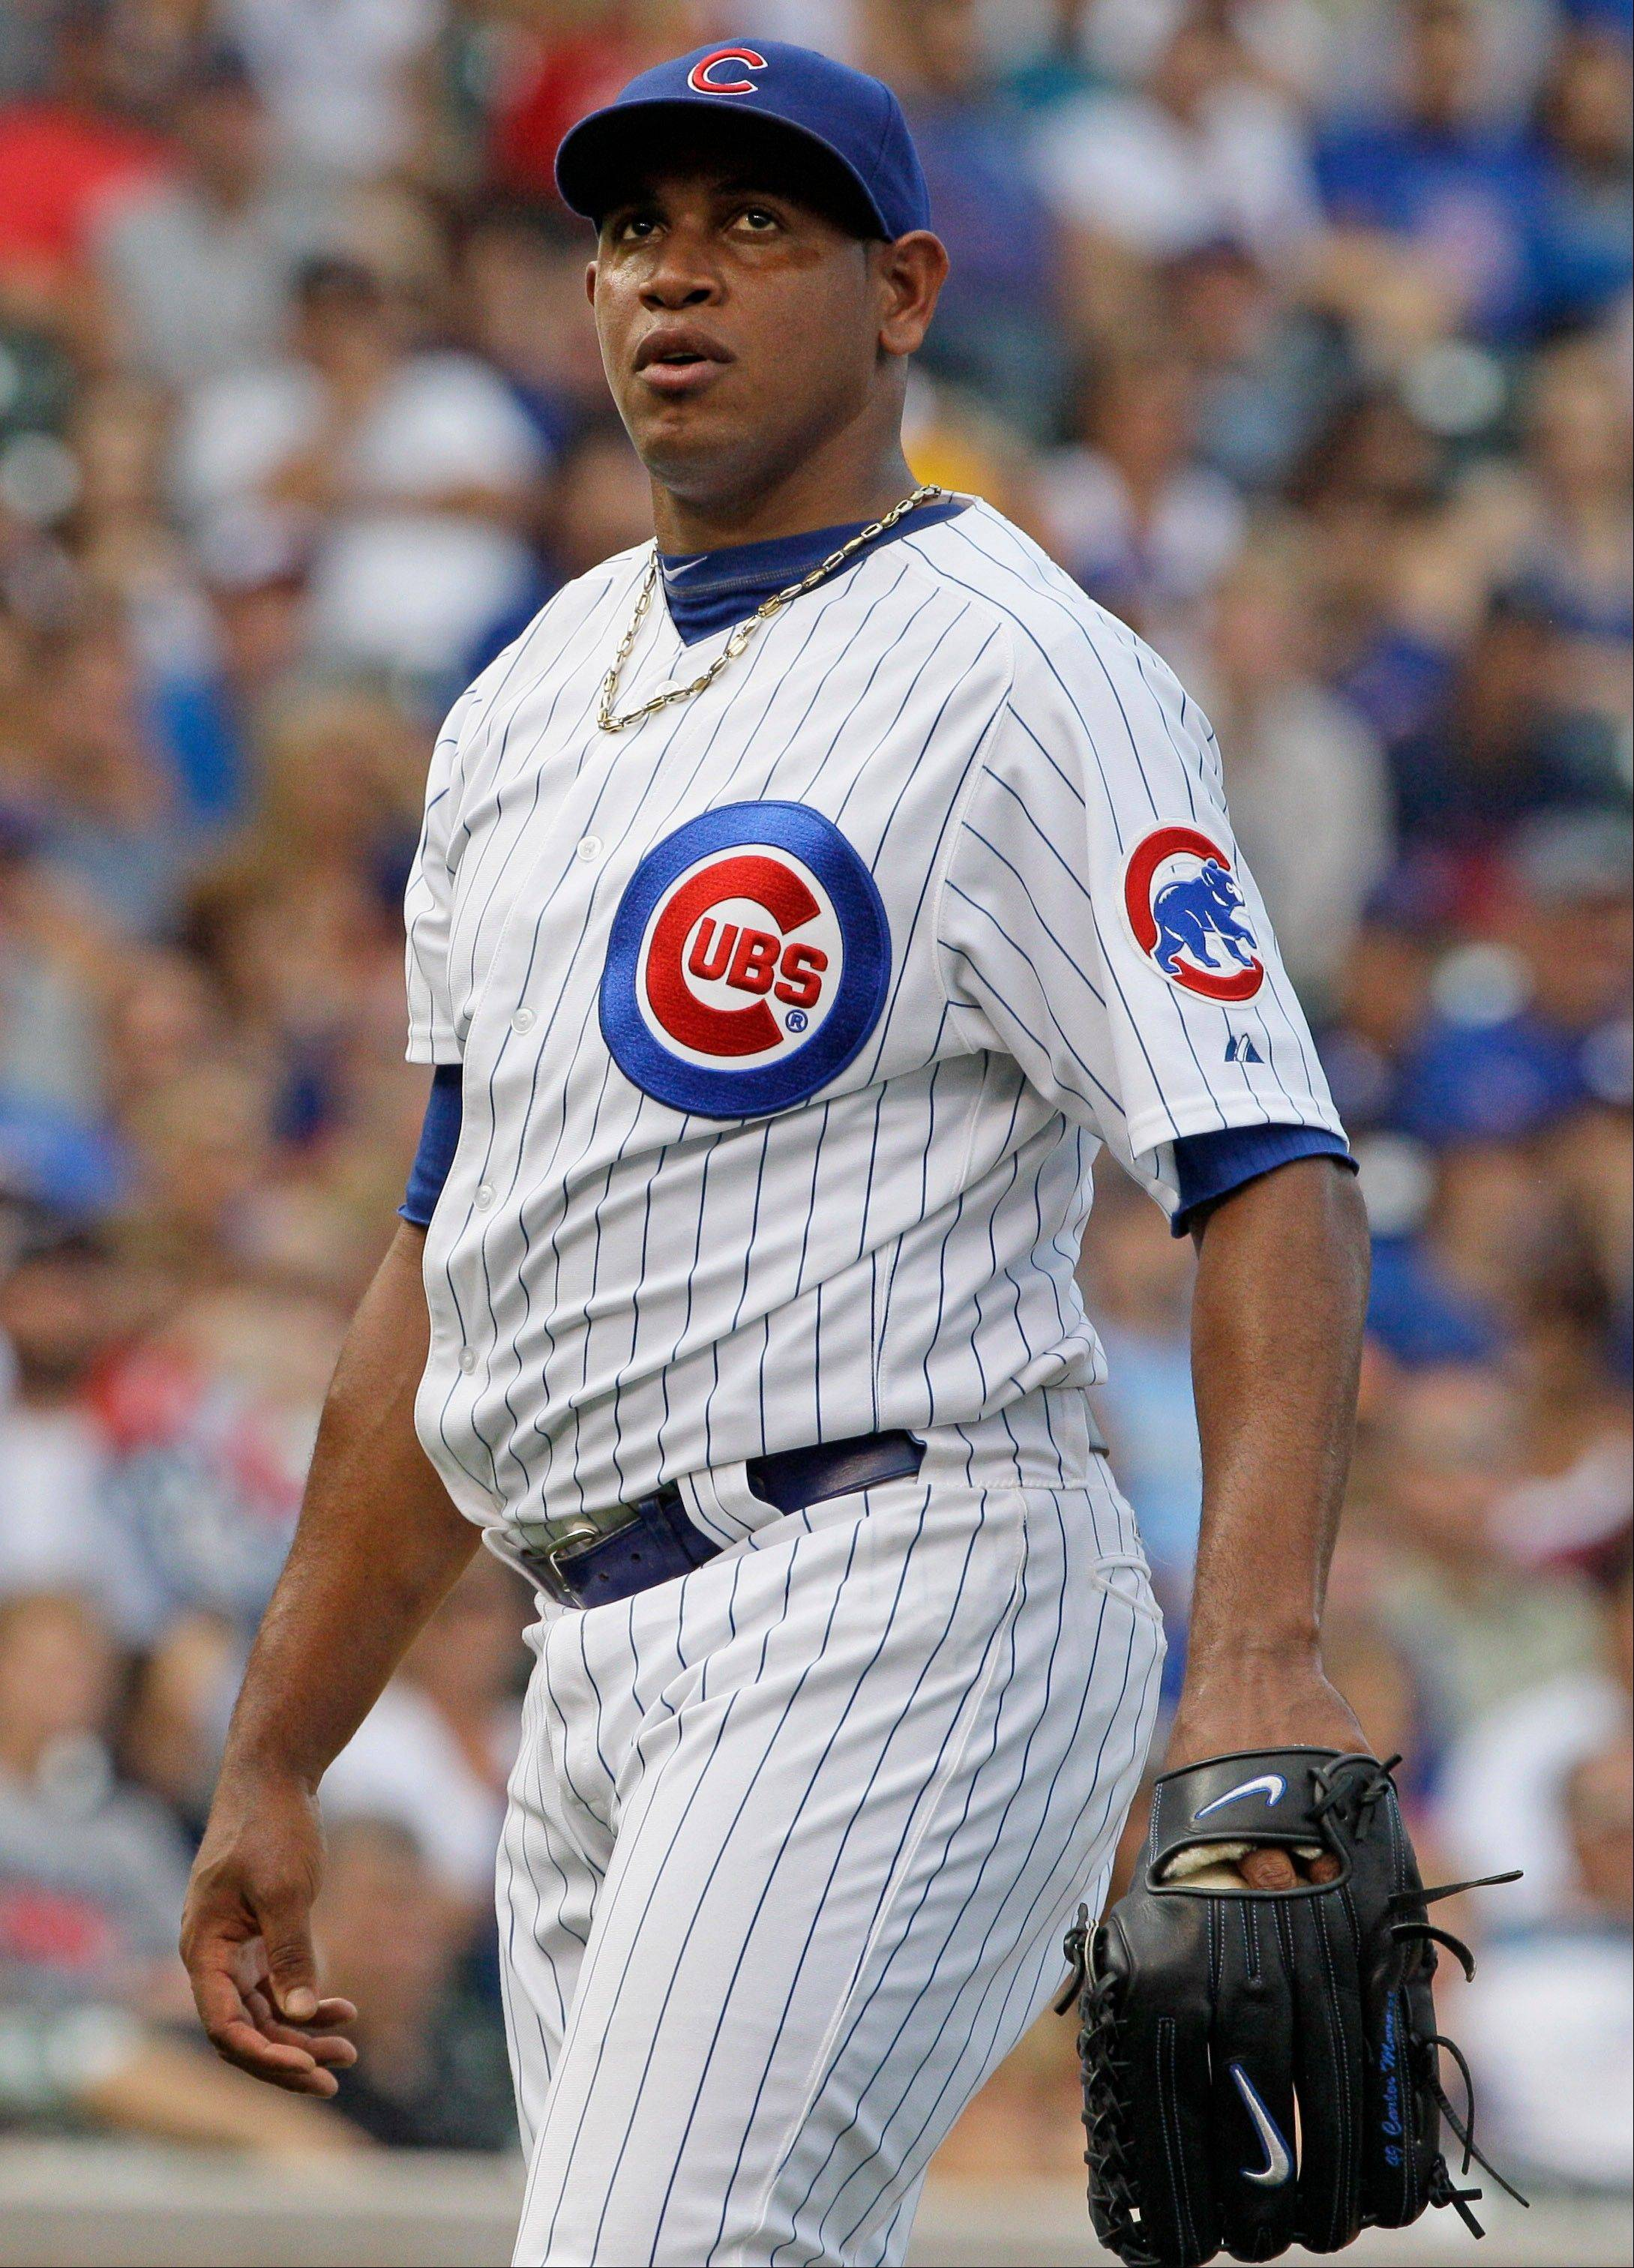 Cubs closer Carlos Marmol took the loss Sunday, giving up 2 runs in the ninth inning as the Giants won 7-5